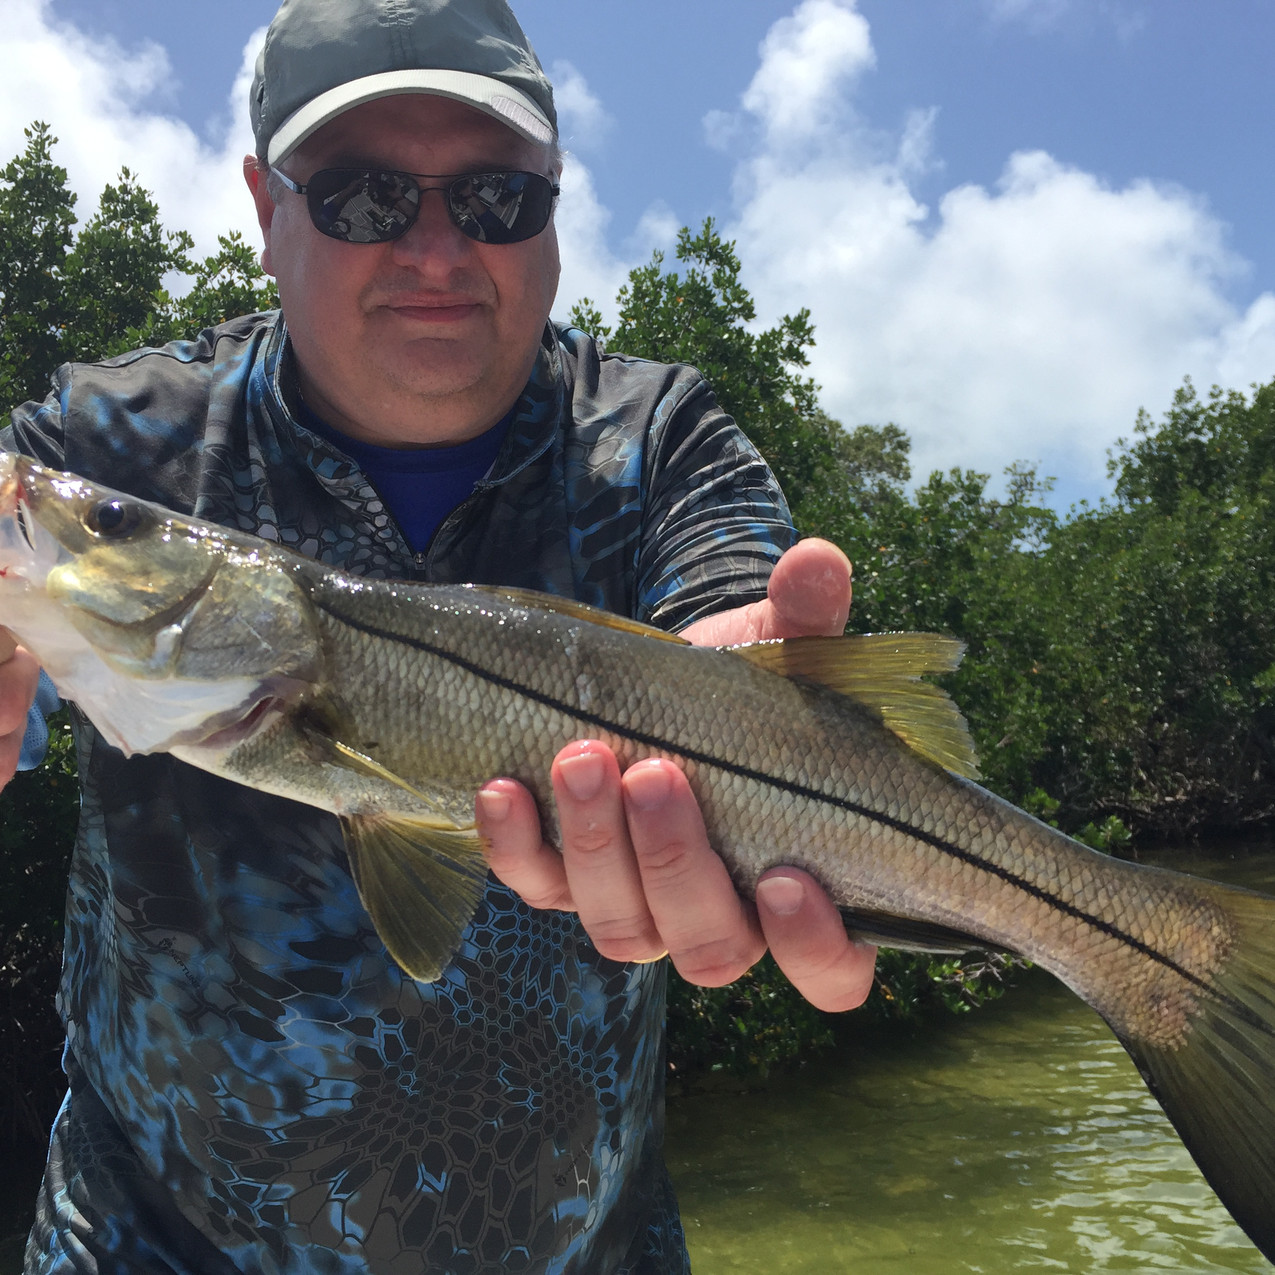 Ashley and his snook